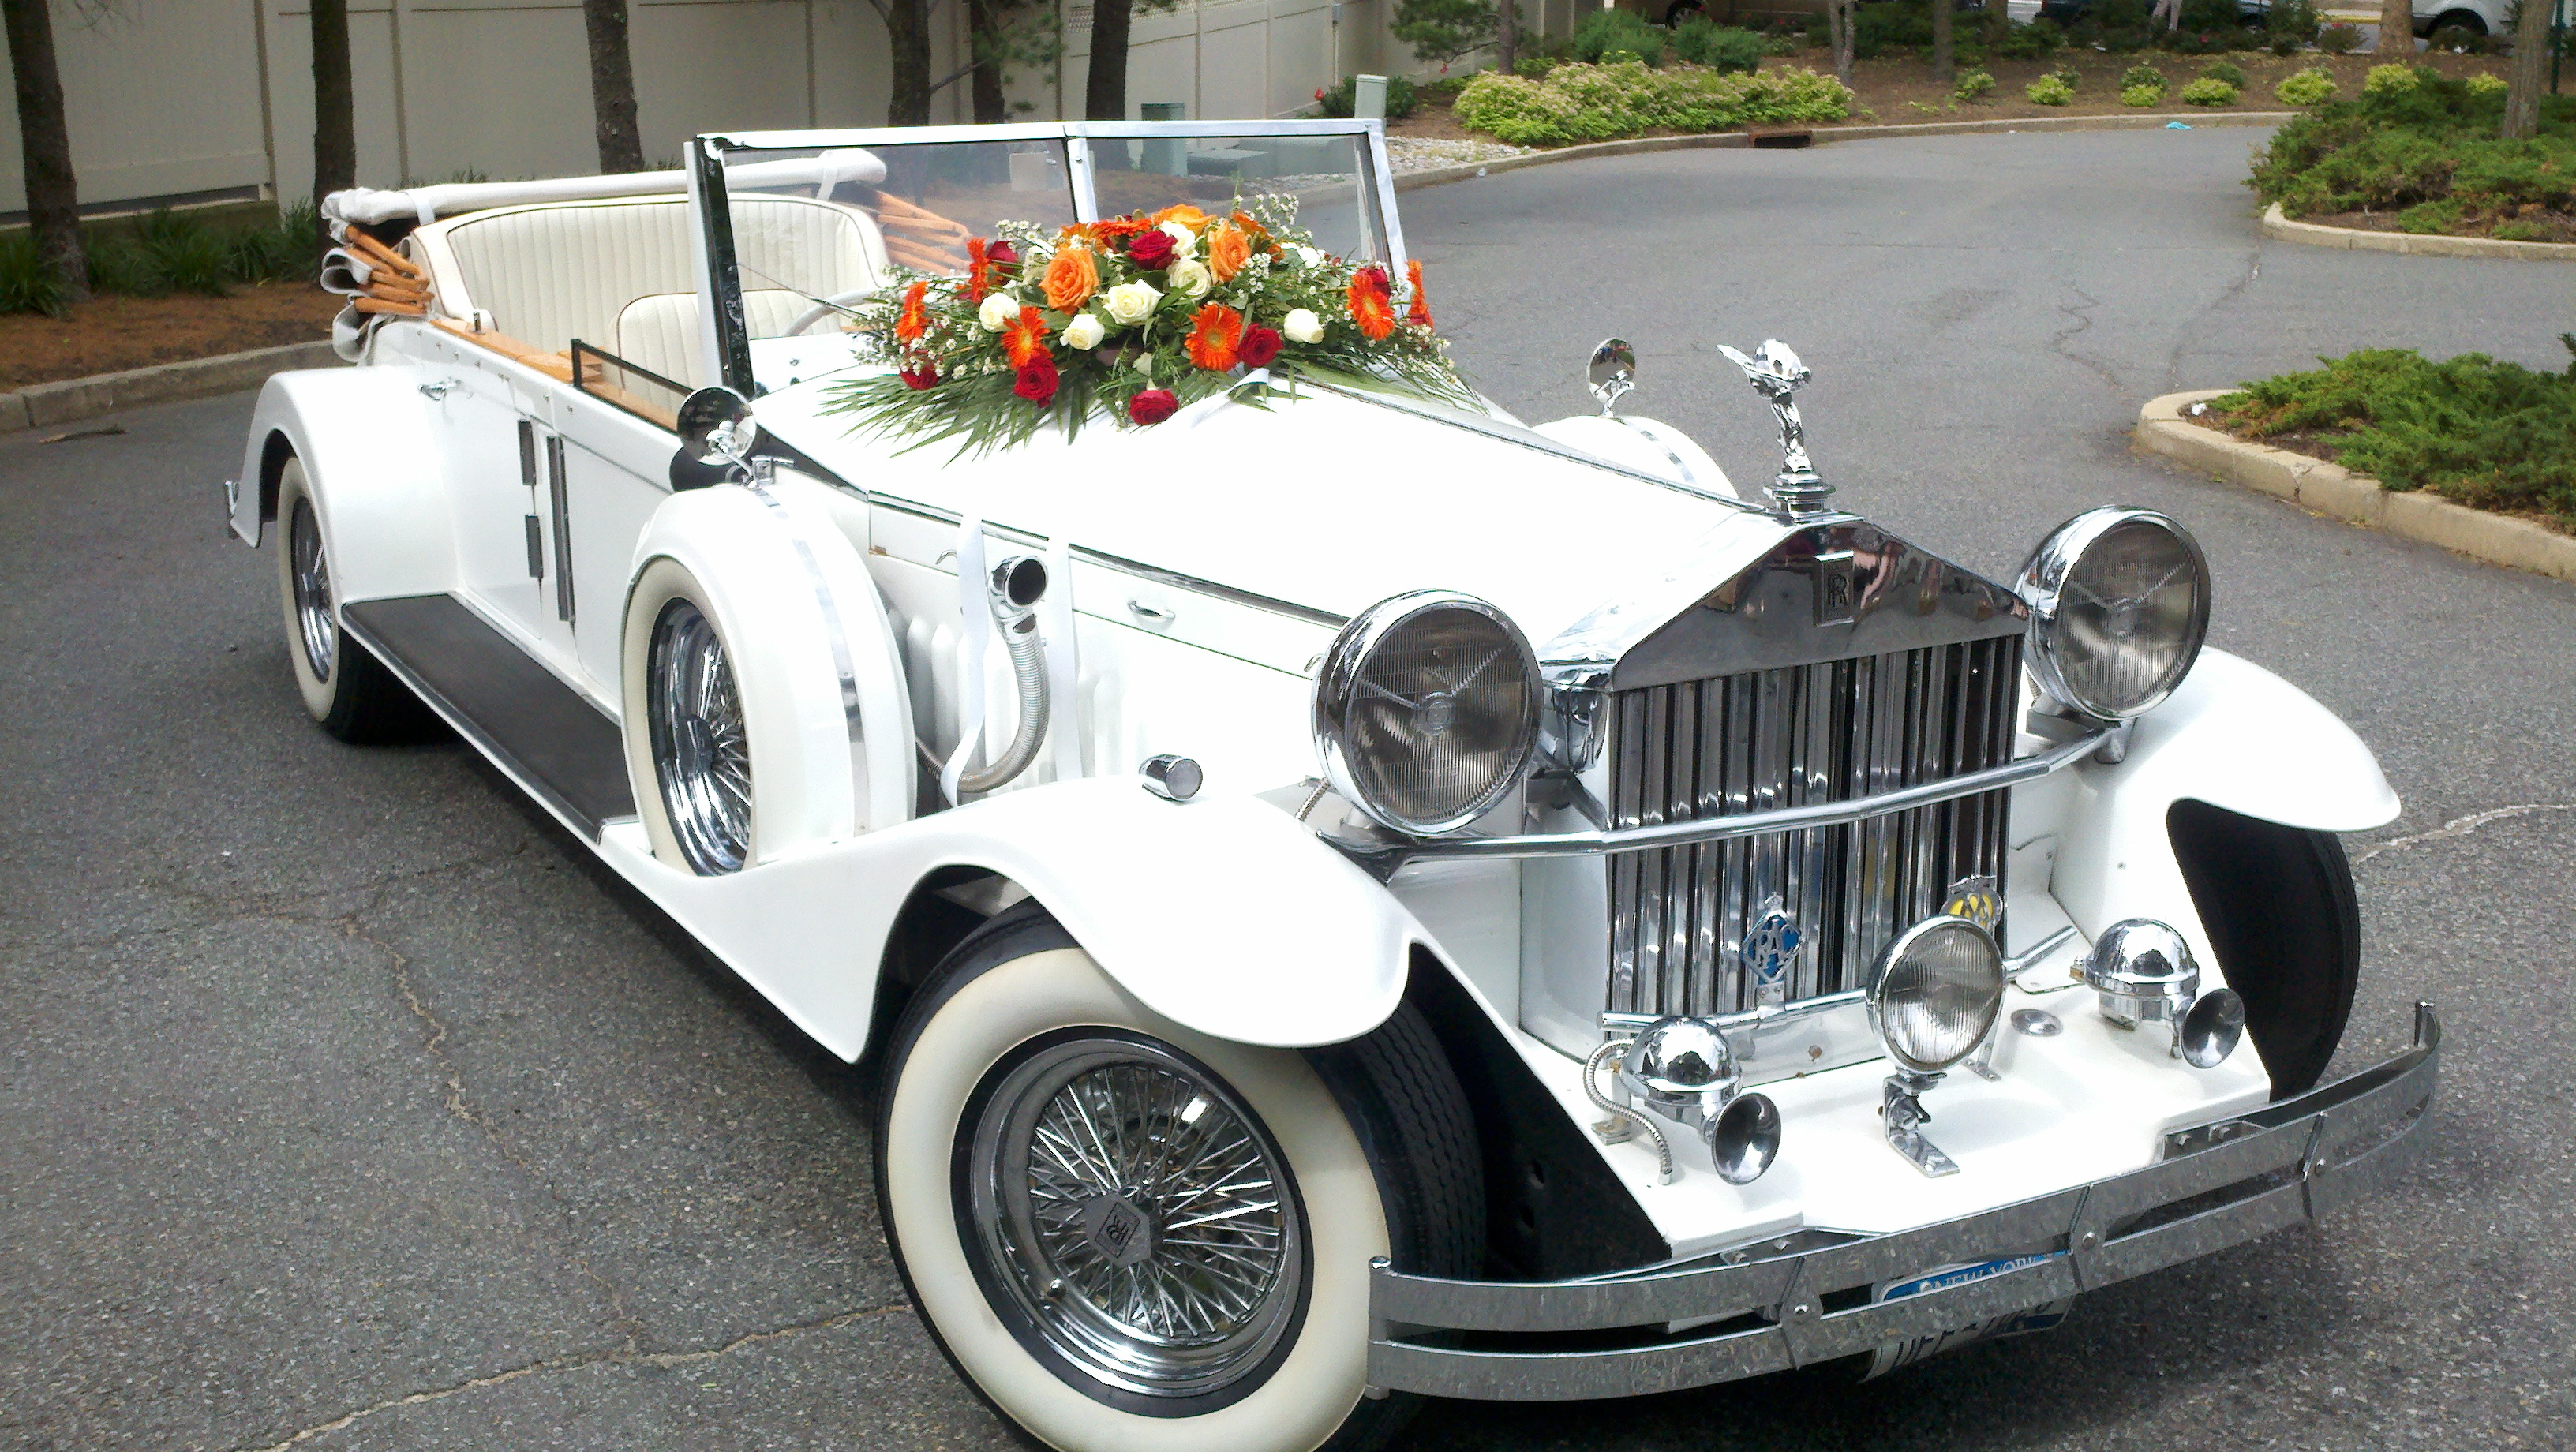 1930 Touring Rolls Royce Convertible Nynj Limousine